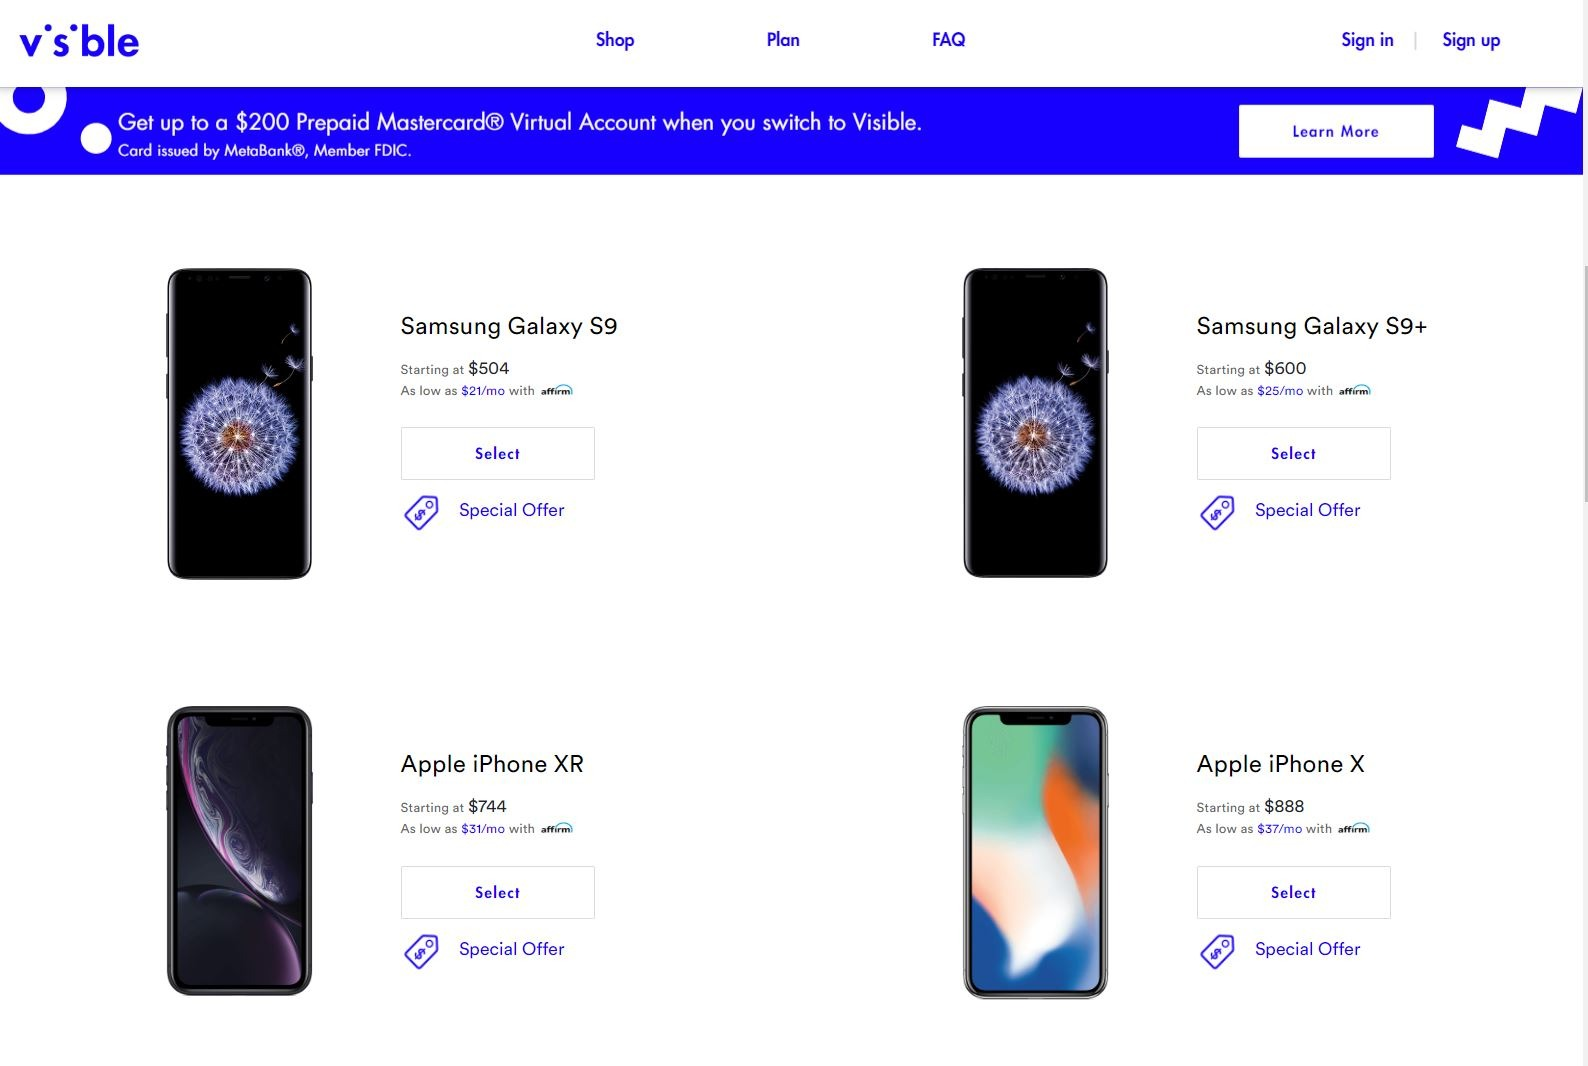 Visible offers recent phones but with some notable omissions